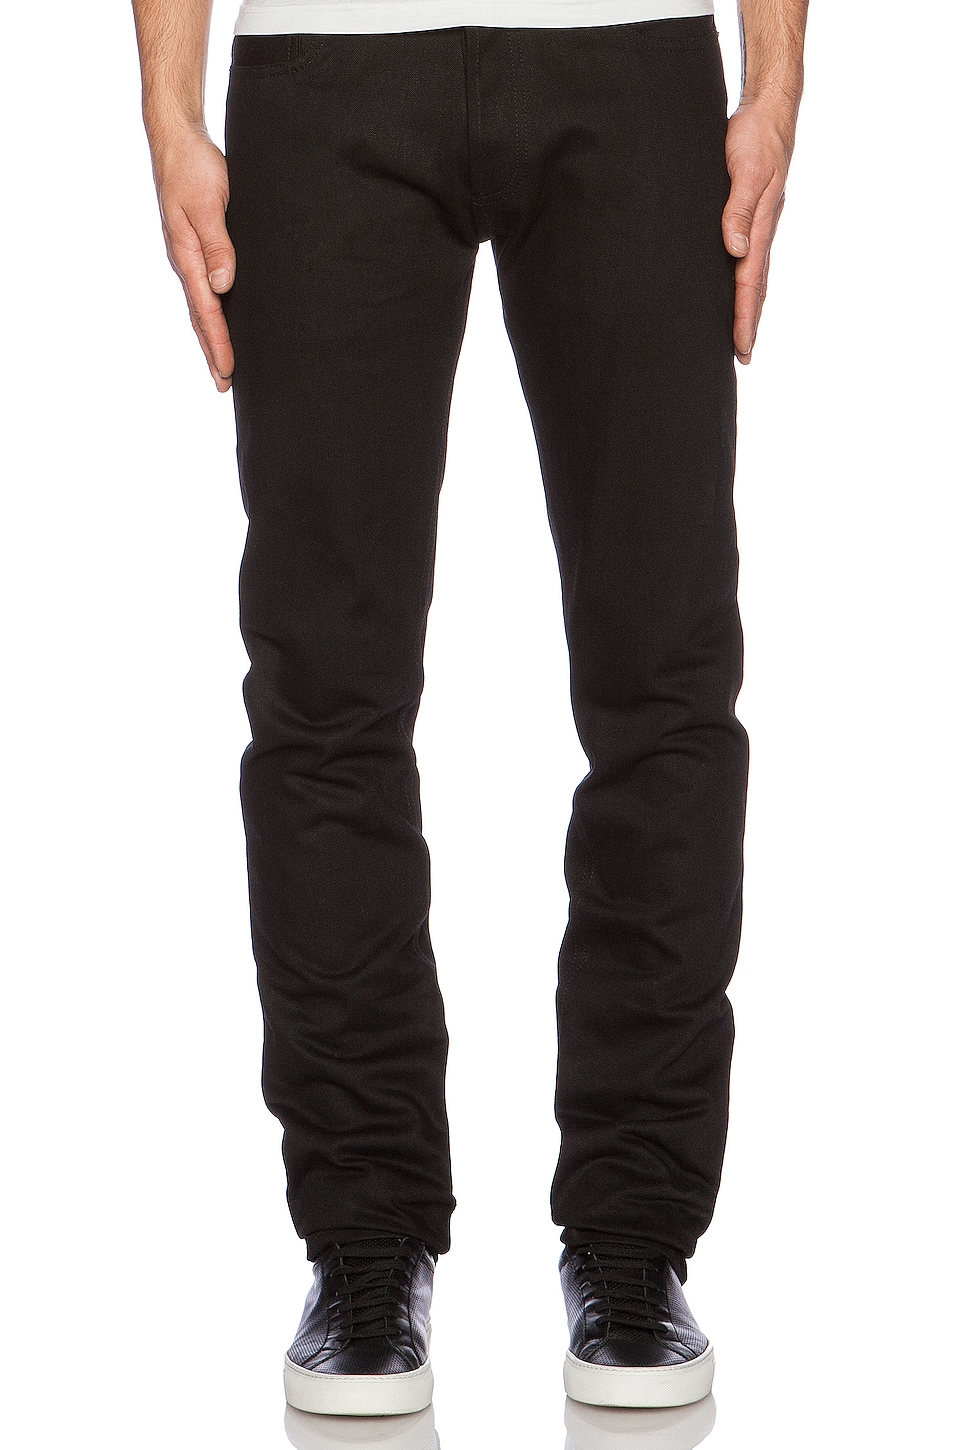 3sixteen Slim Tapered Denim en Double Black Selvedge